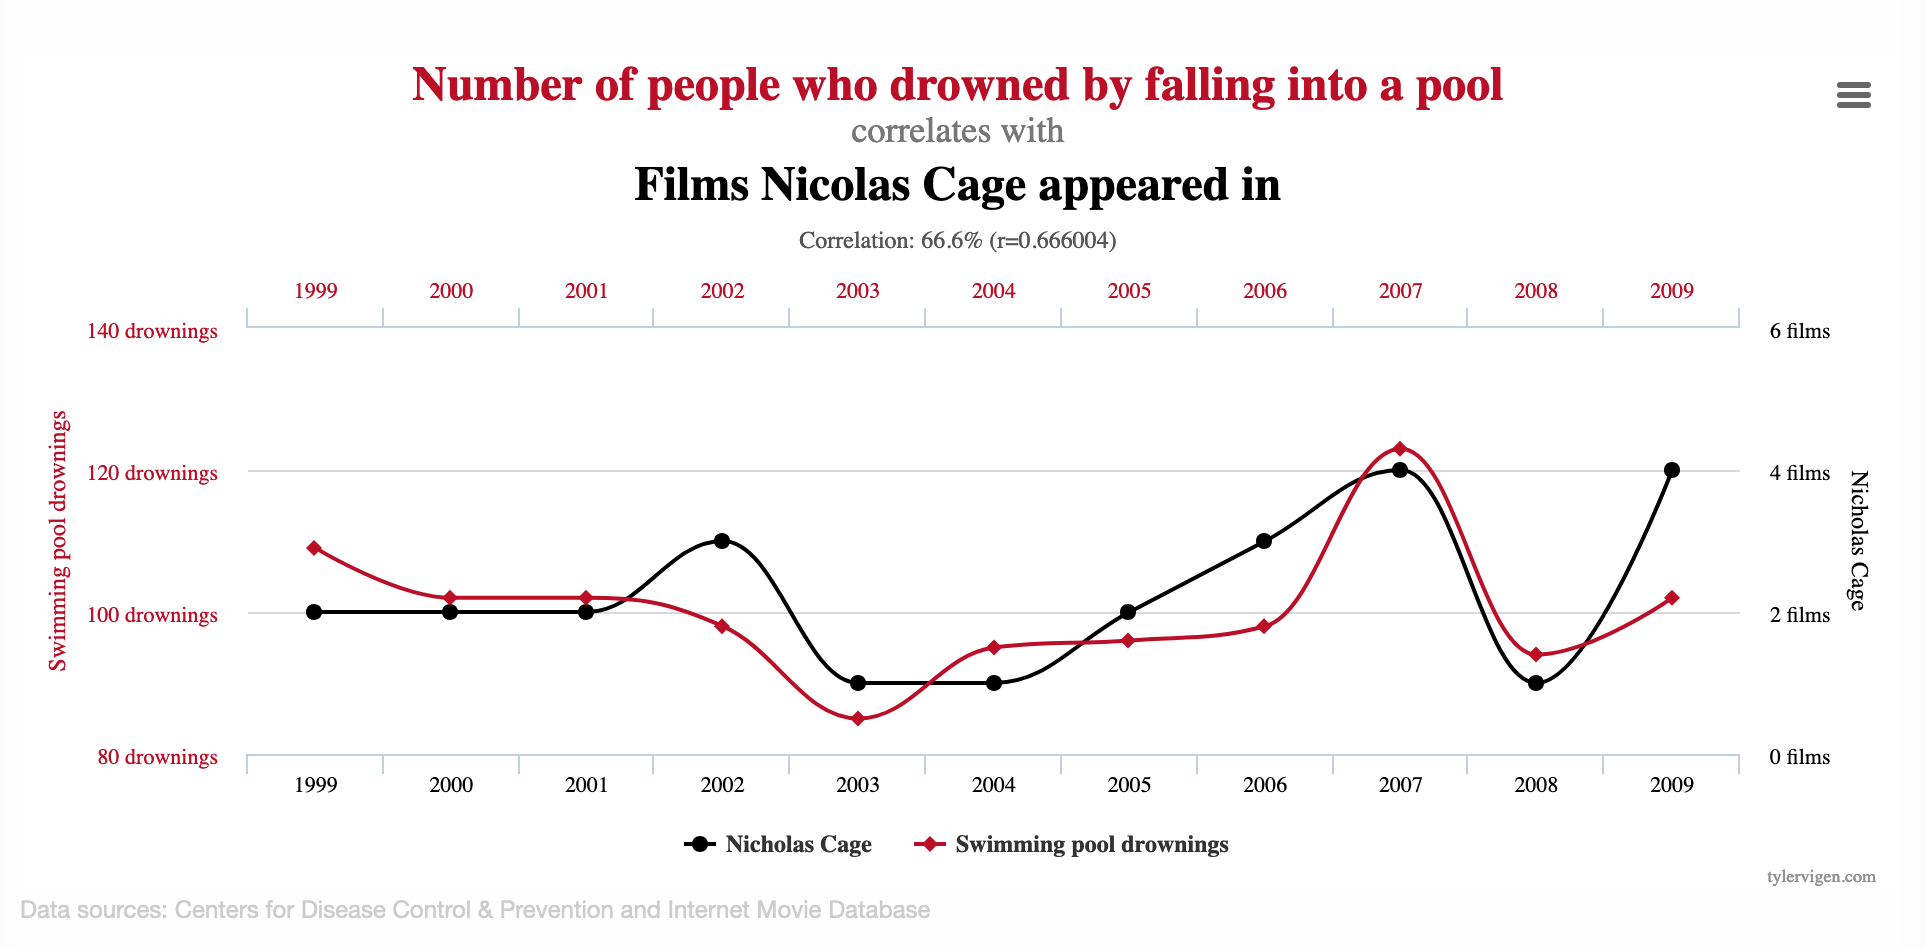 Chart showing Correlation between number of people drown in a pool and films of Nicolas Page